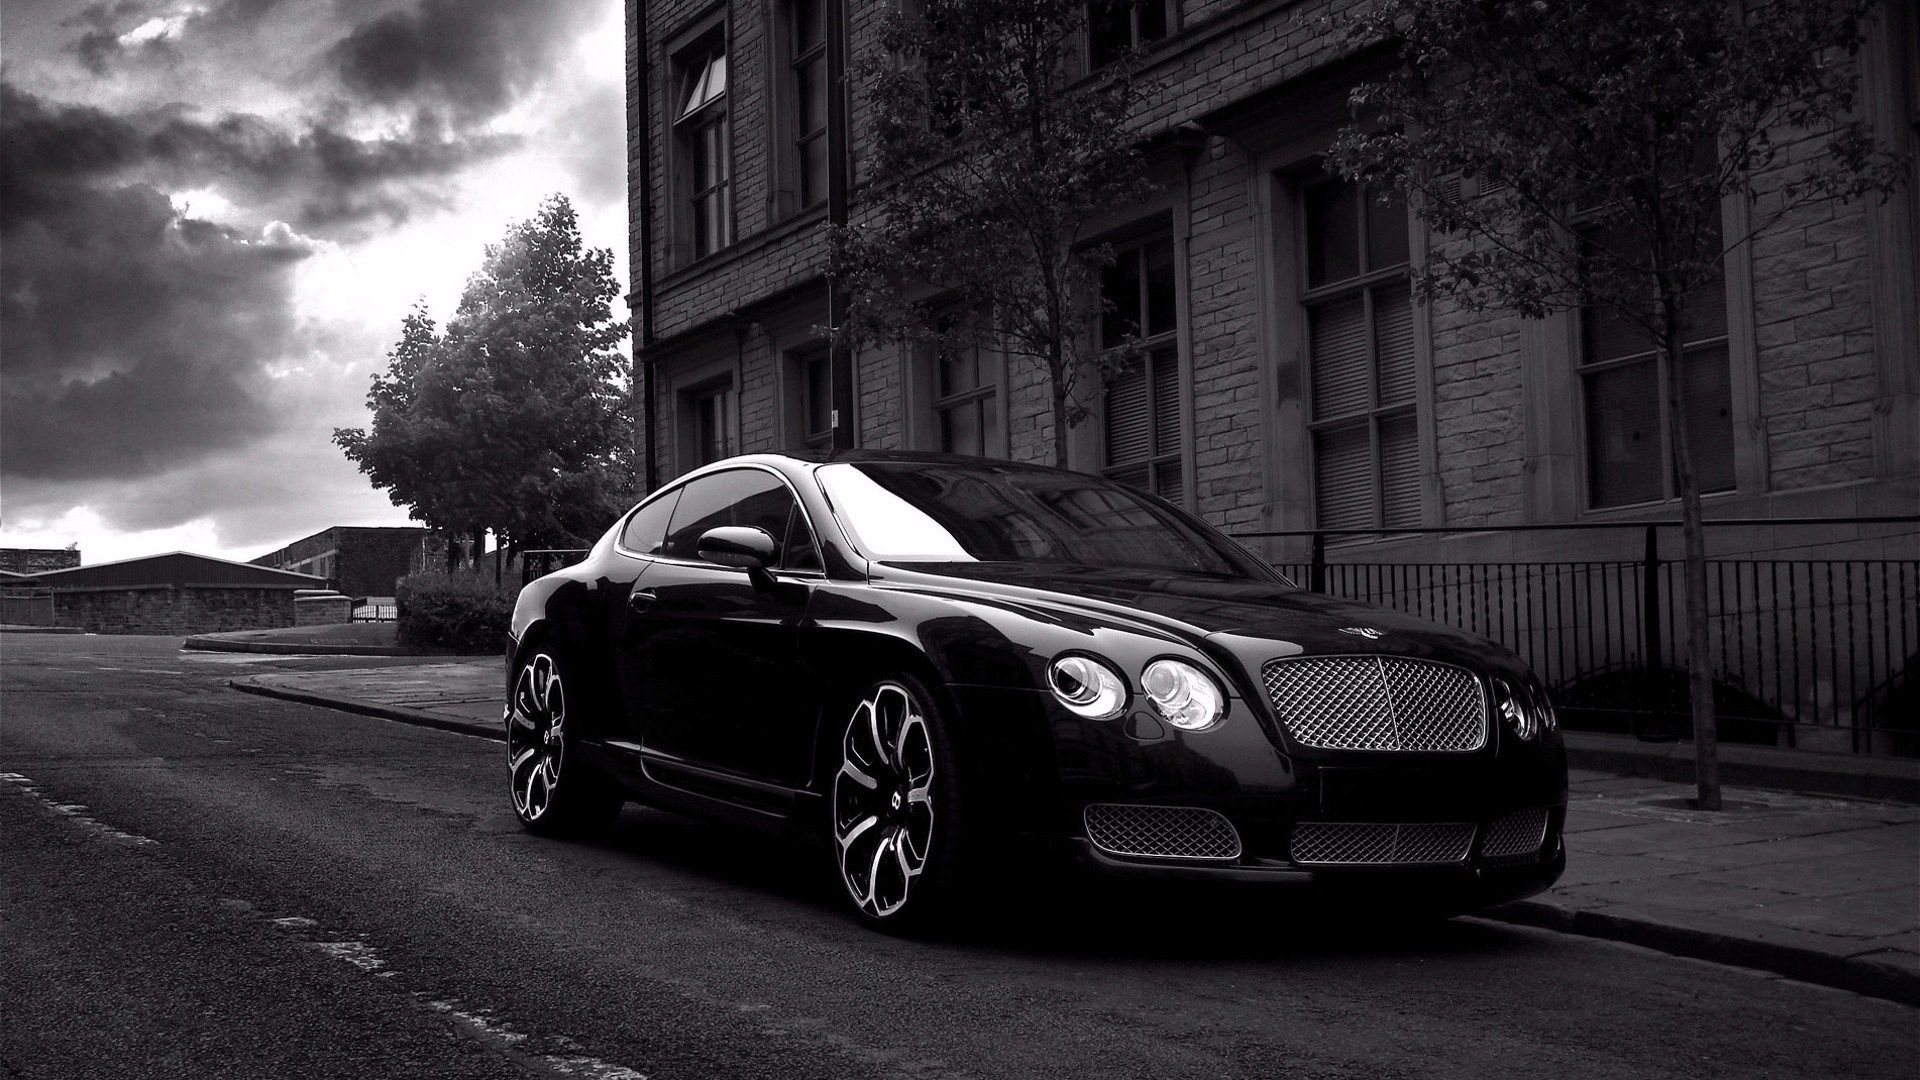 bentley wallpaper hd pack Collis Black